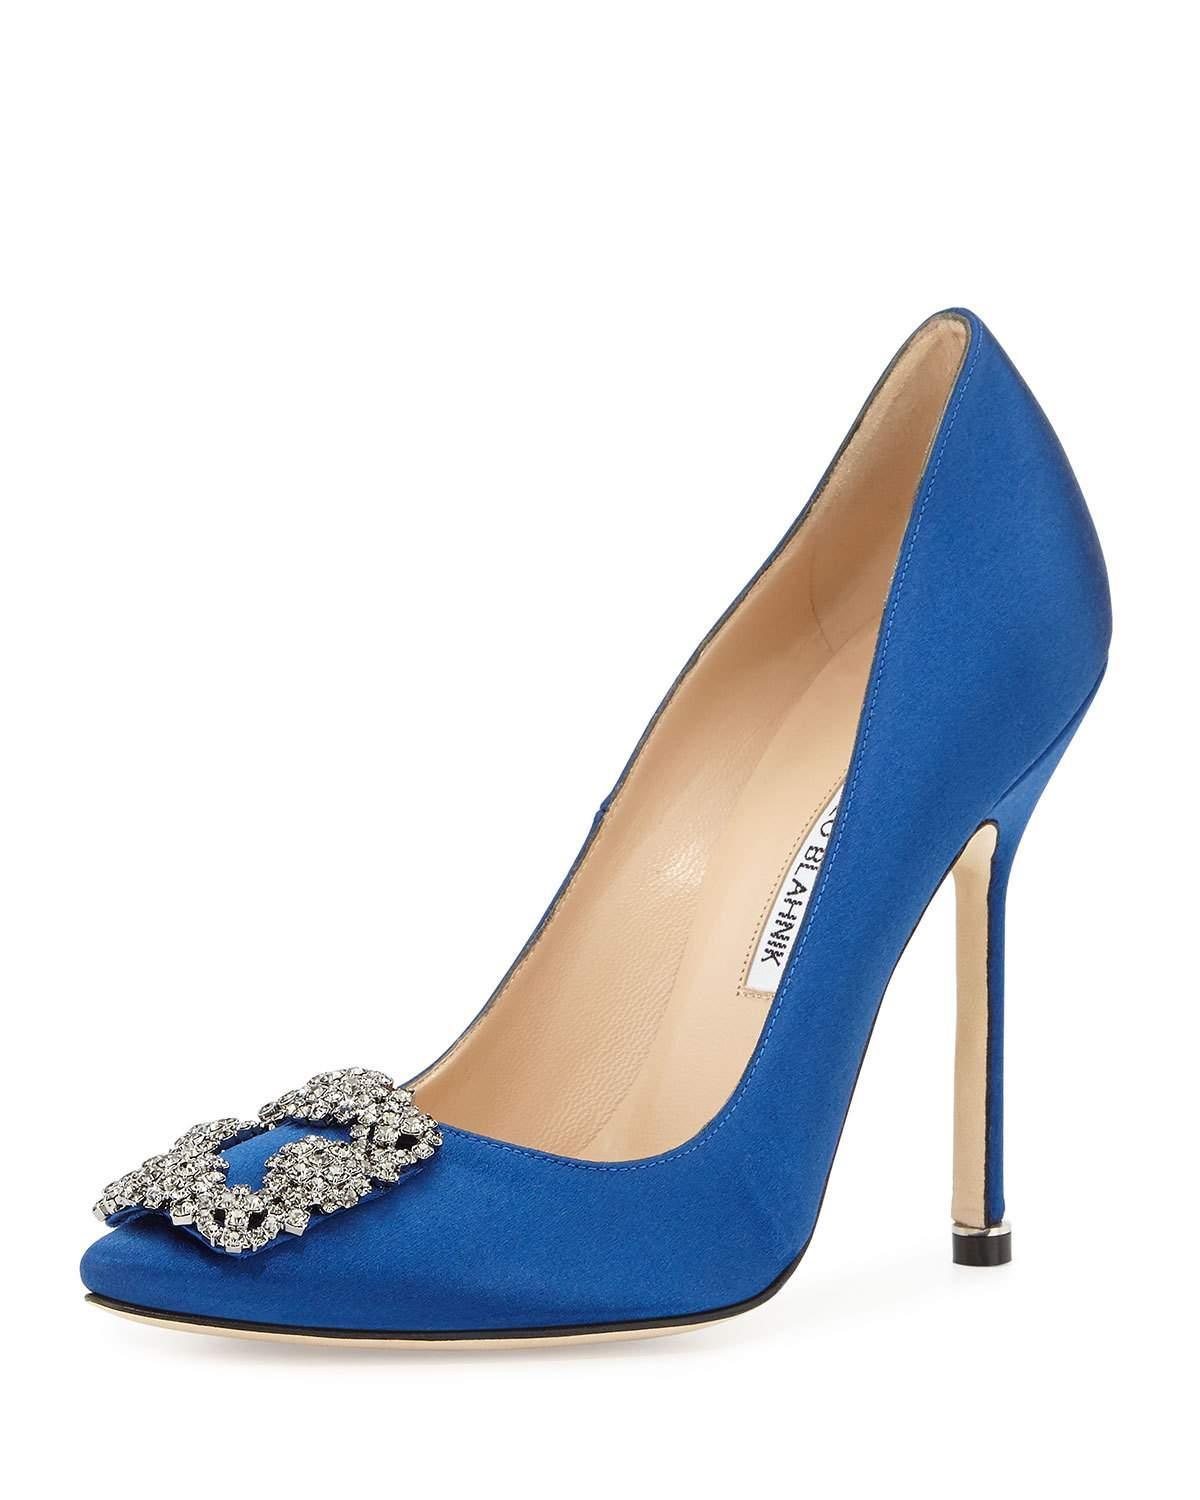 Manolo blahnik Hangisi Crystal-buckle Satin 115mm Pump in ...